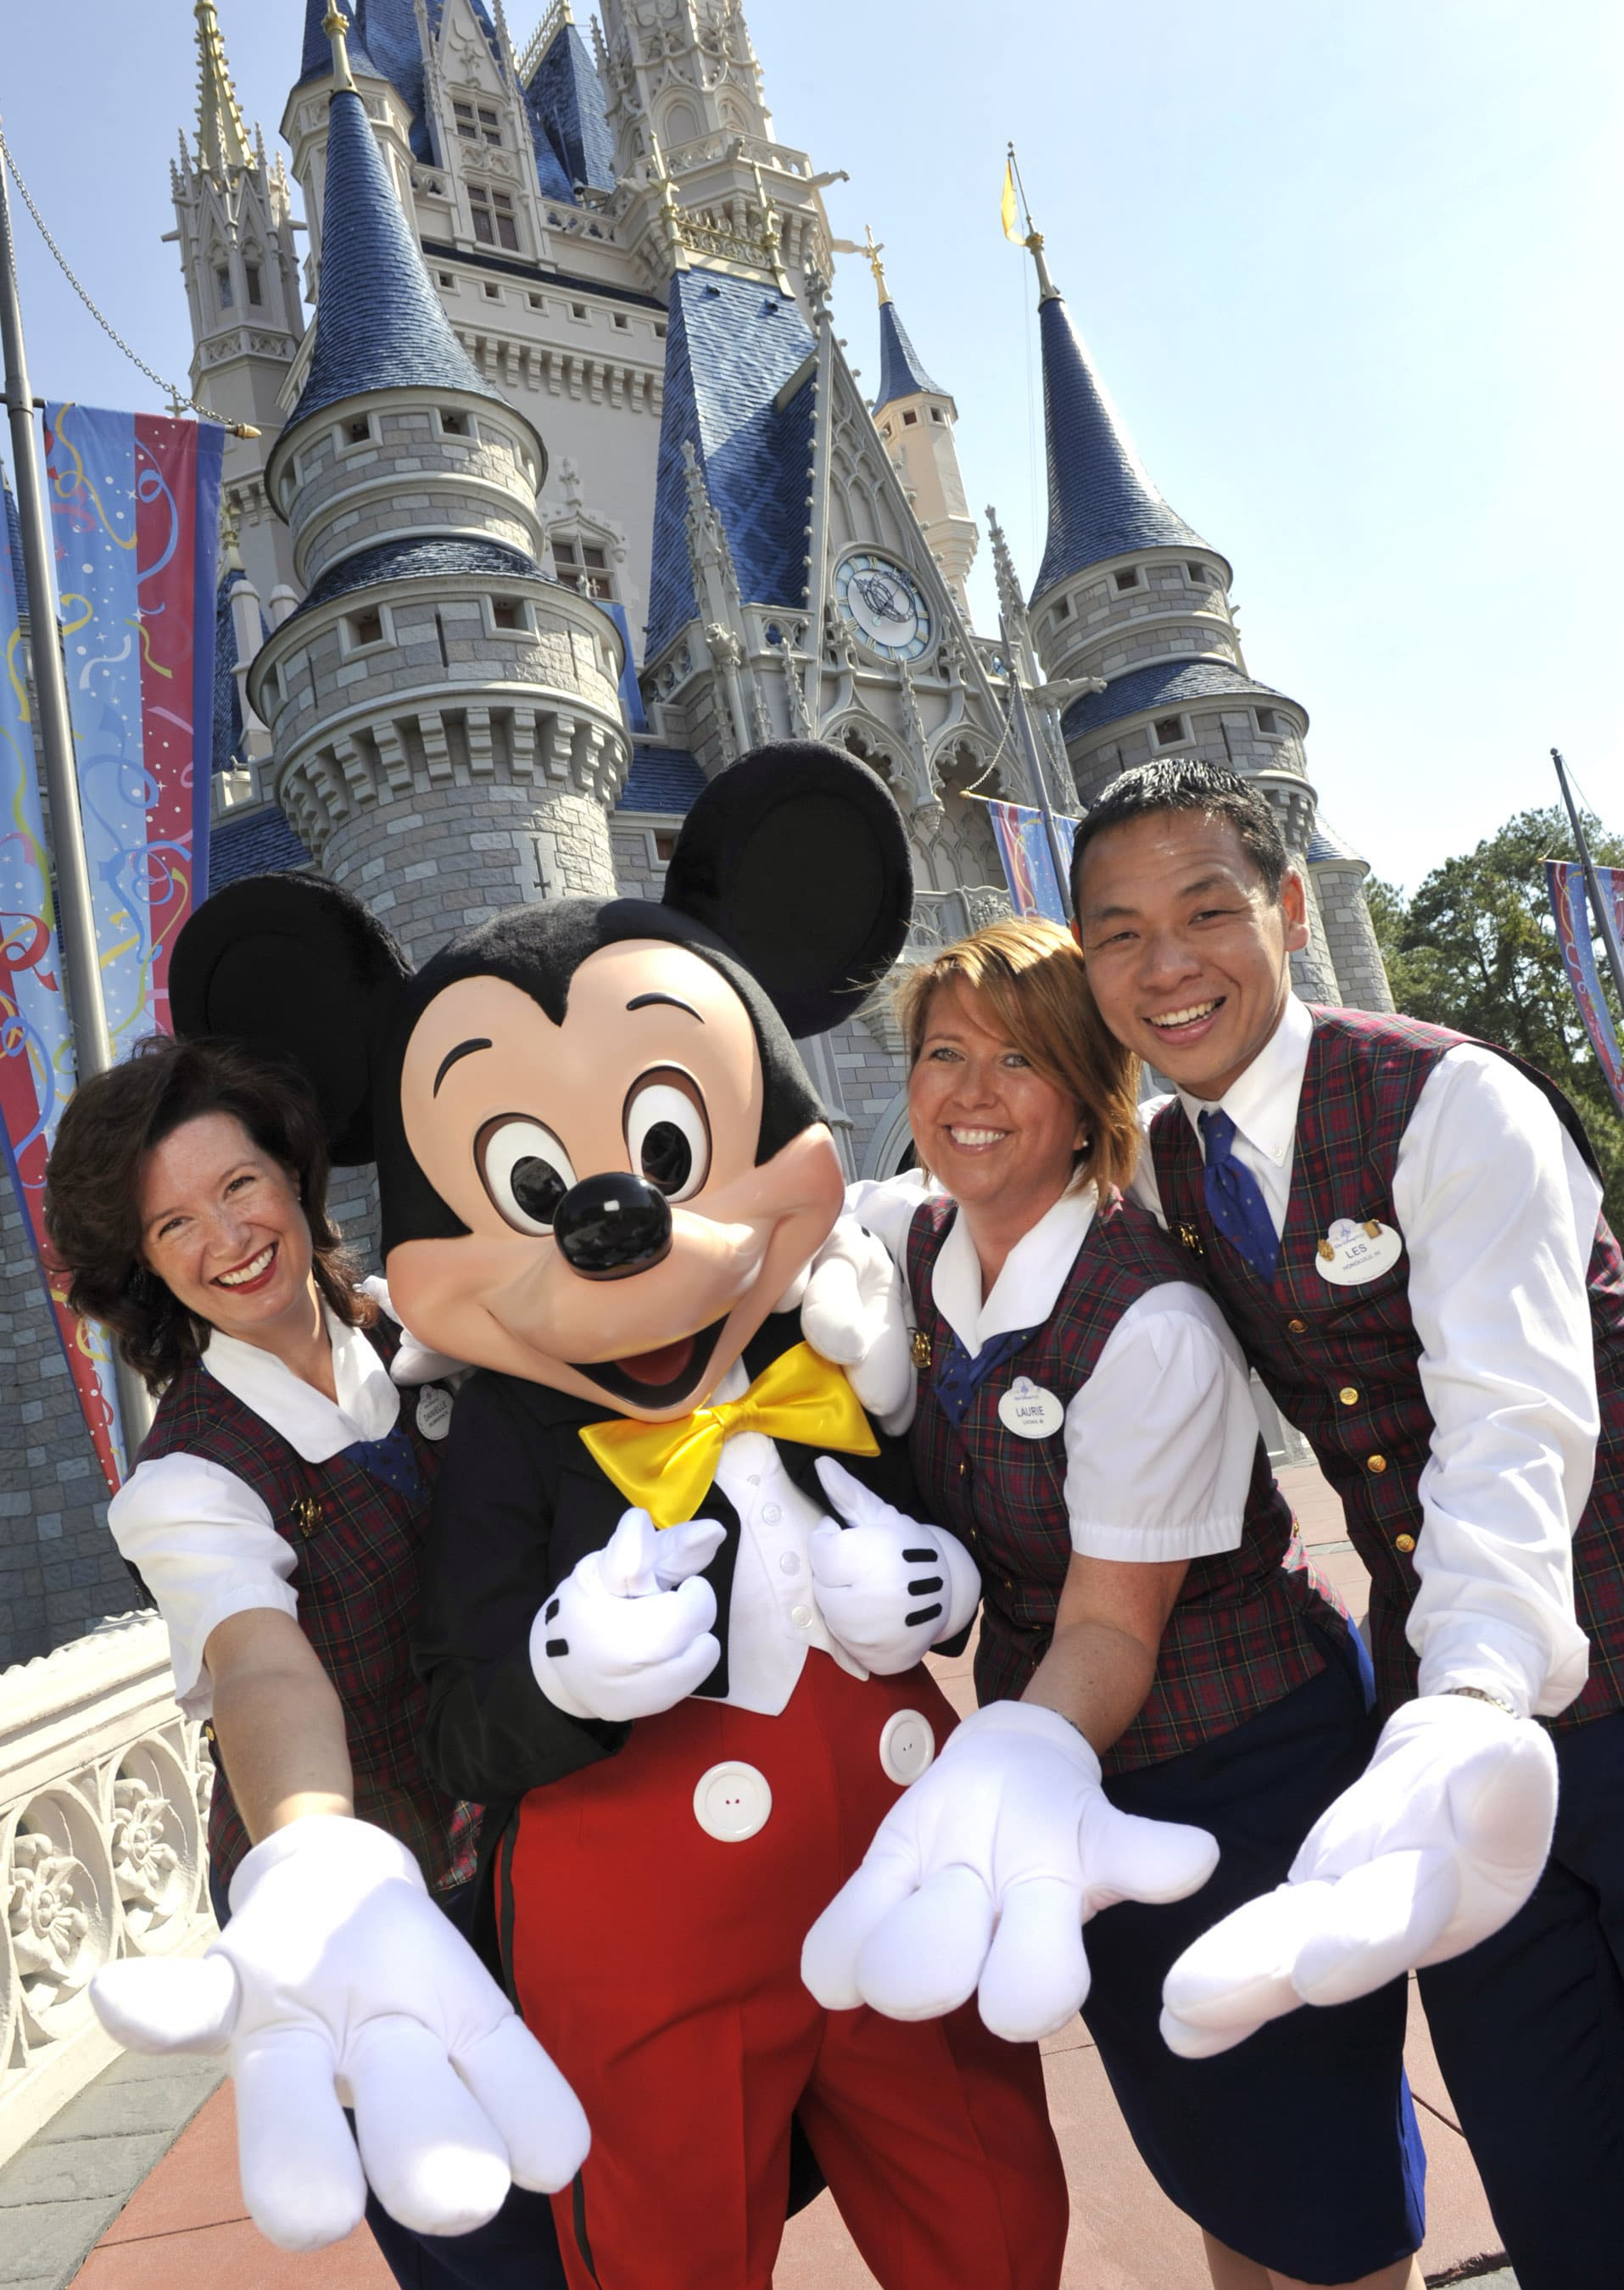 VIP Tour Guides at Walt Disney World